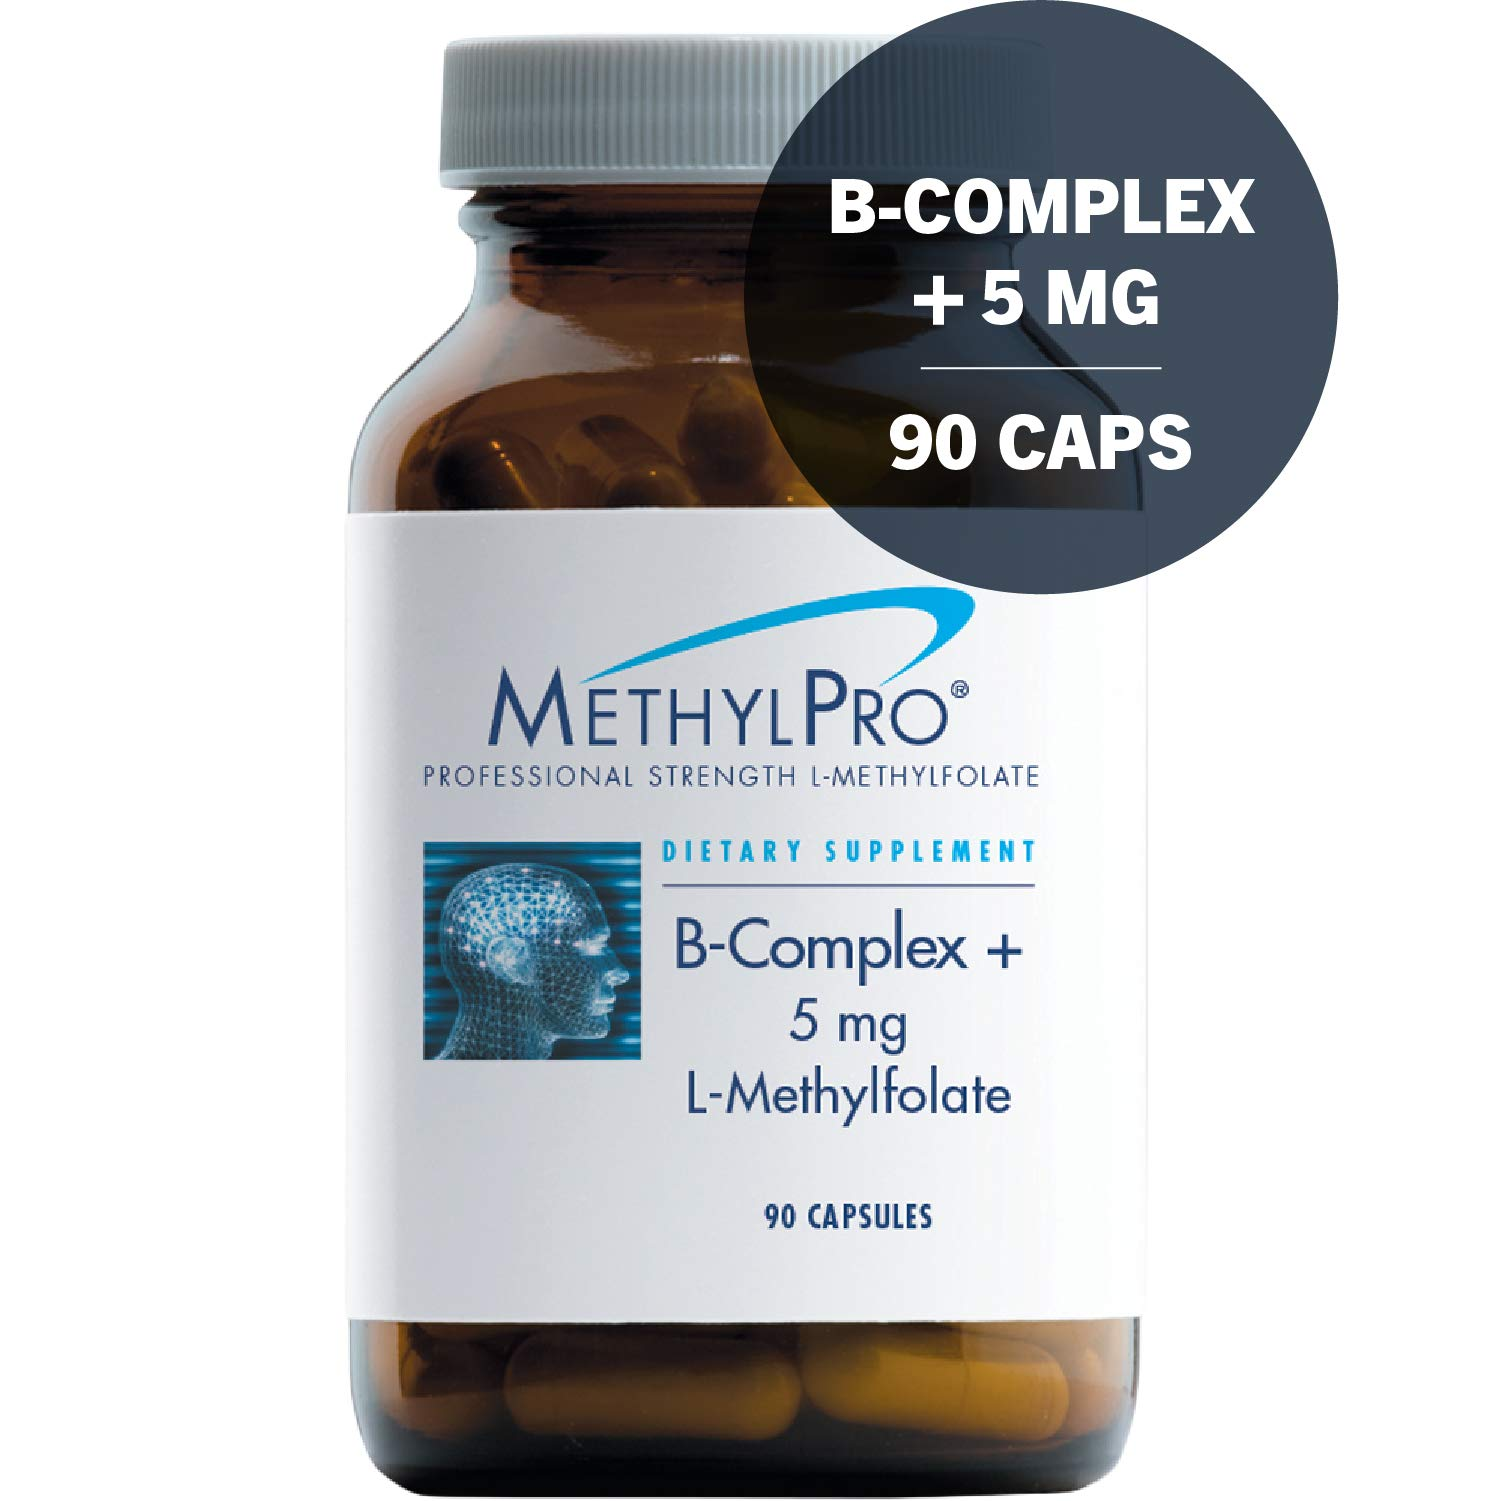 MethylPro B-Complex + 5mg L-Methylfolate 90 Capsules - Professional Strength Active Folate for Energy + Mood Support with Methyl B12 + B6 as P-5-P, Non-GMO + Gluten-Free by MethylPro